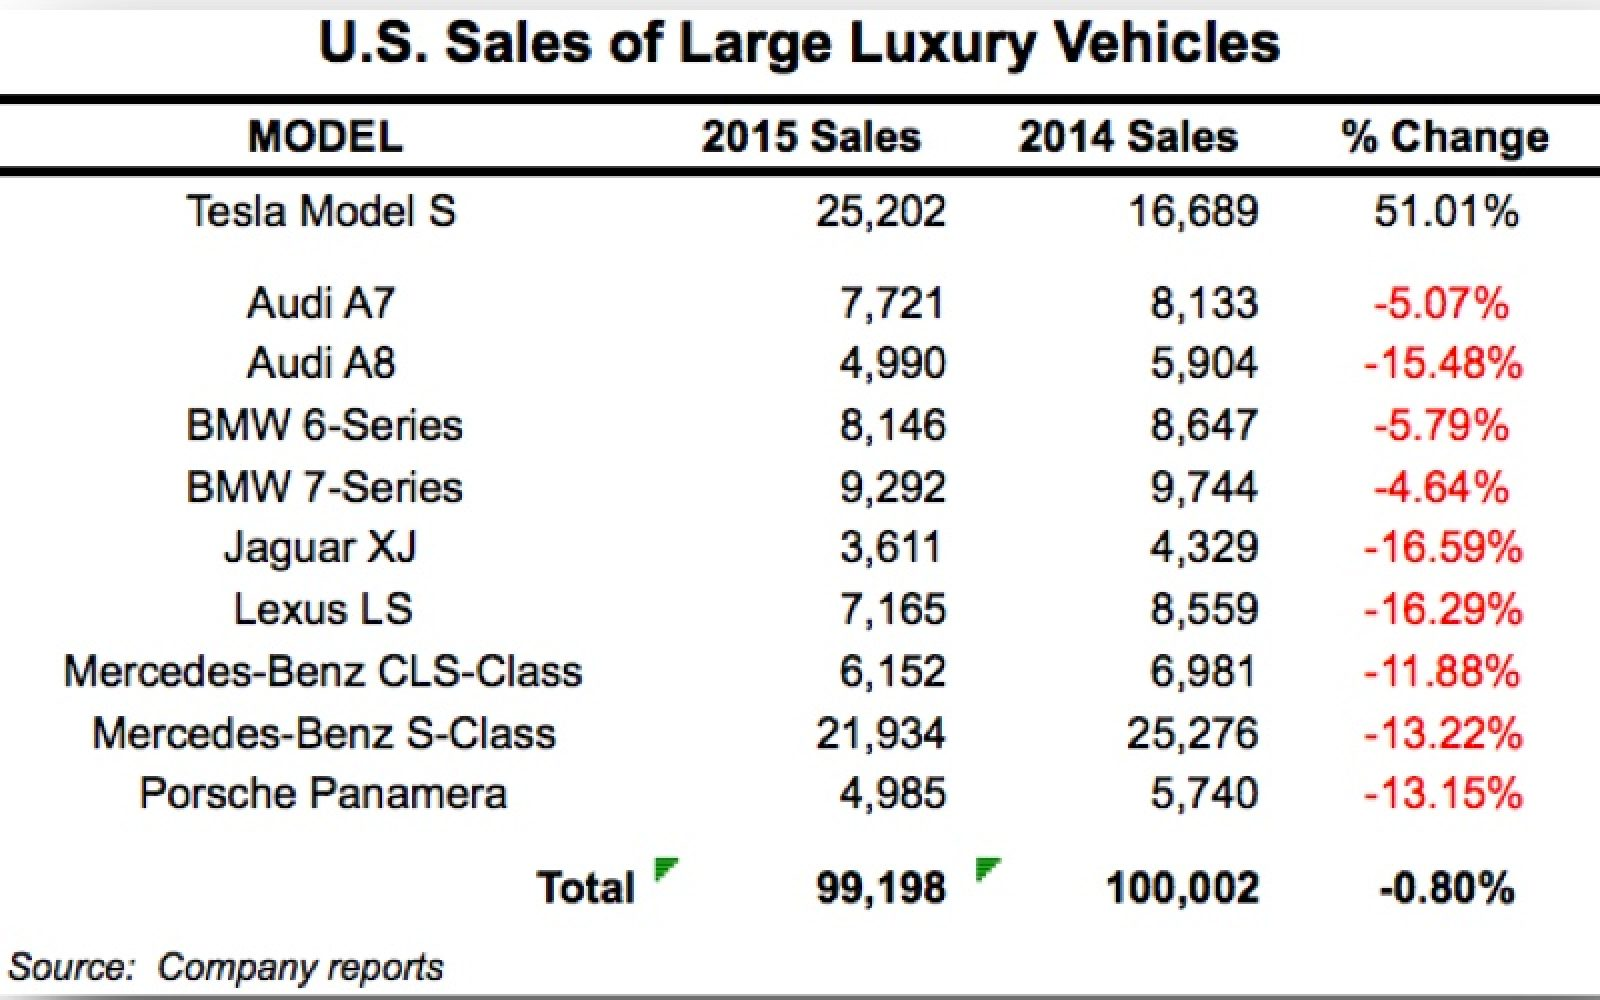 Tesla Shows How The Model S Is Totally Disrupting The Large Luxury